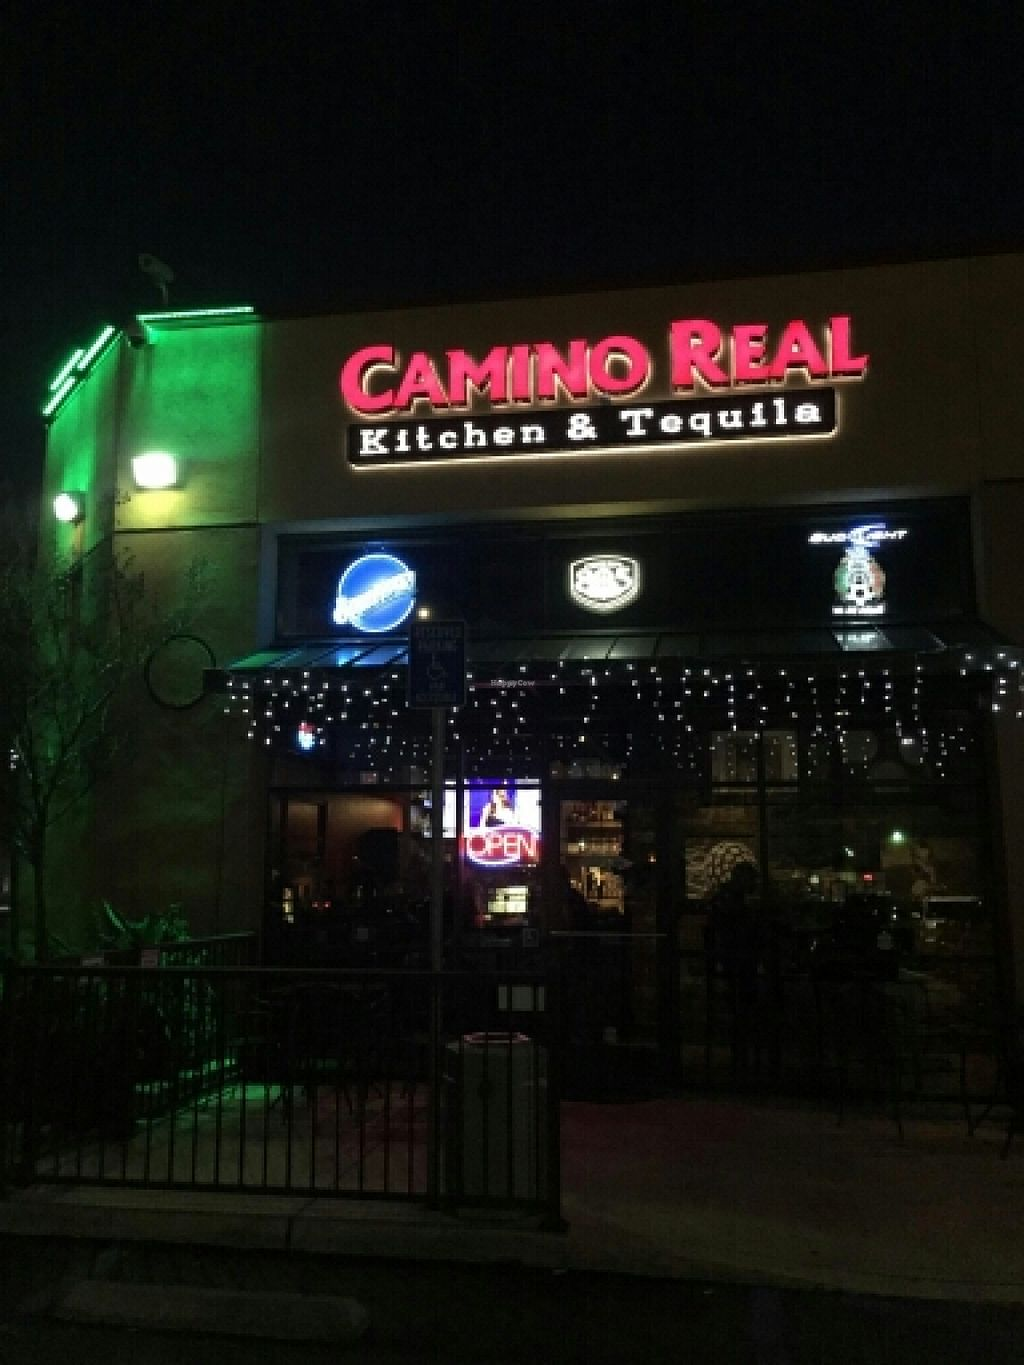 """Photo of Camino Real Kitchen and Tequila  by <a href=""""/members/profile/catbone"""">catbone</a> <br/>Storefront, El Camino Real Kitchen &  Tequila  <br/> February 15, 2016  - <a href='/contact/abuse/image/60663/136448'>Report</a>"""